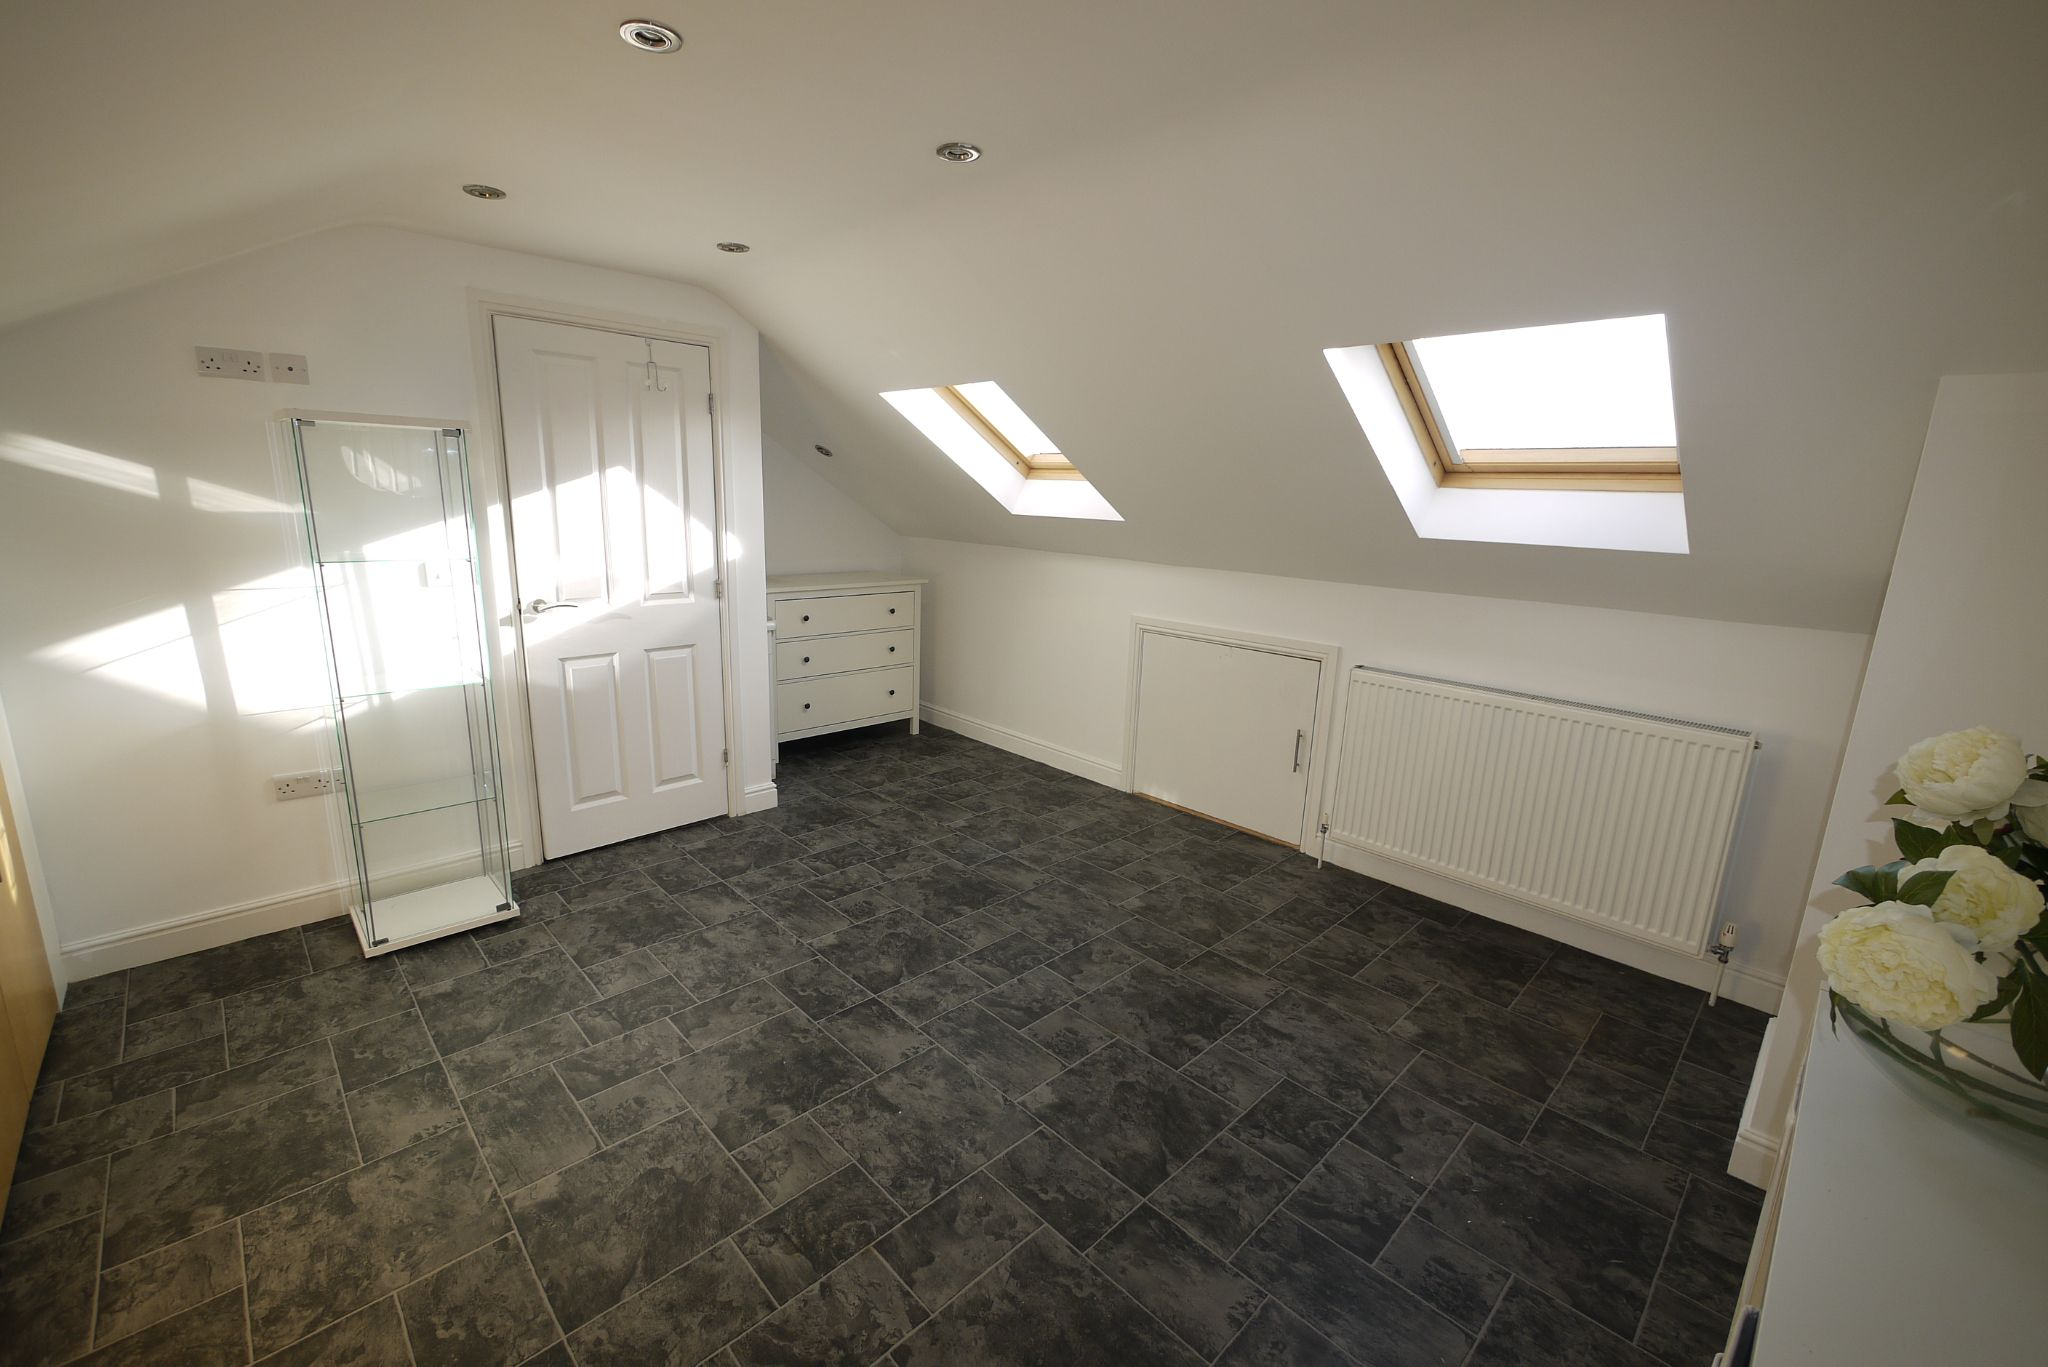 4 bedroom barn character property For Sale in Brighouse - Photograph 15.